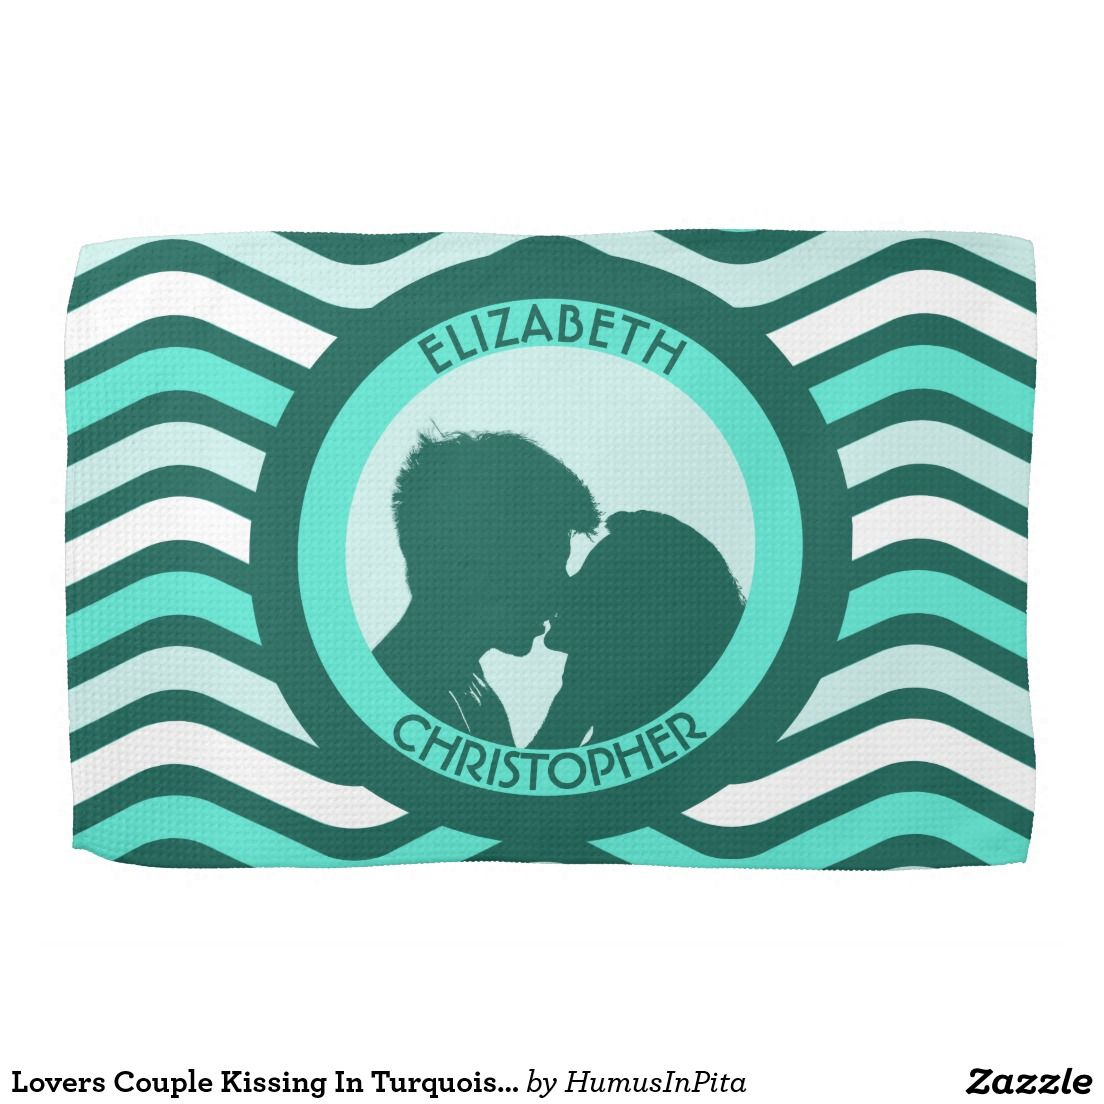 Lovers Couple Kissing In Turquoise Circles Towels